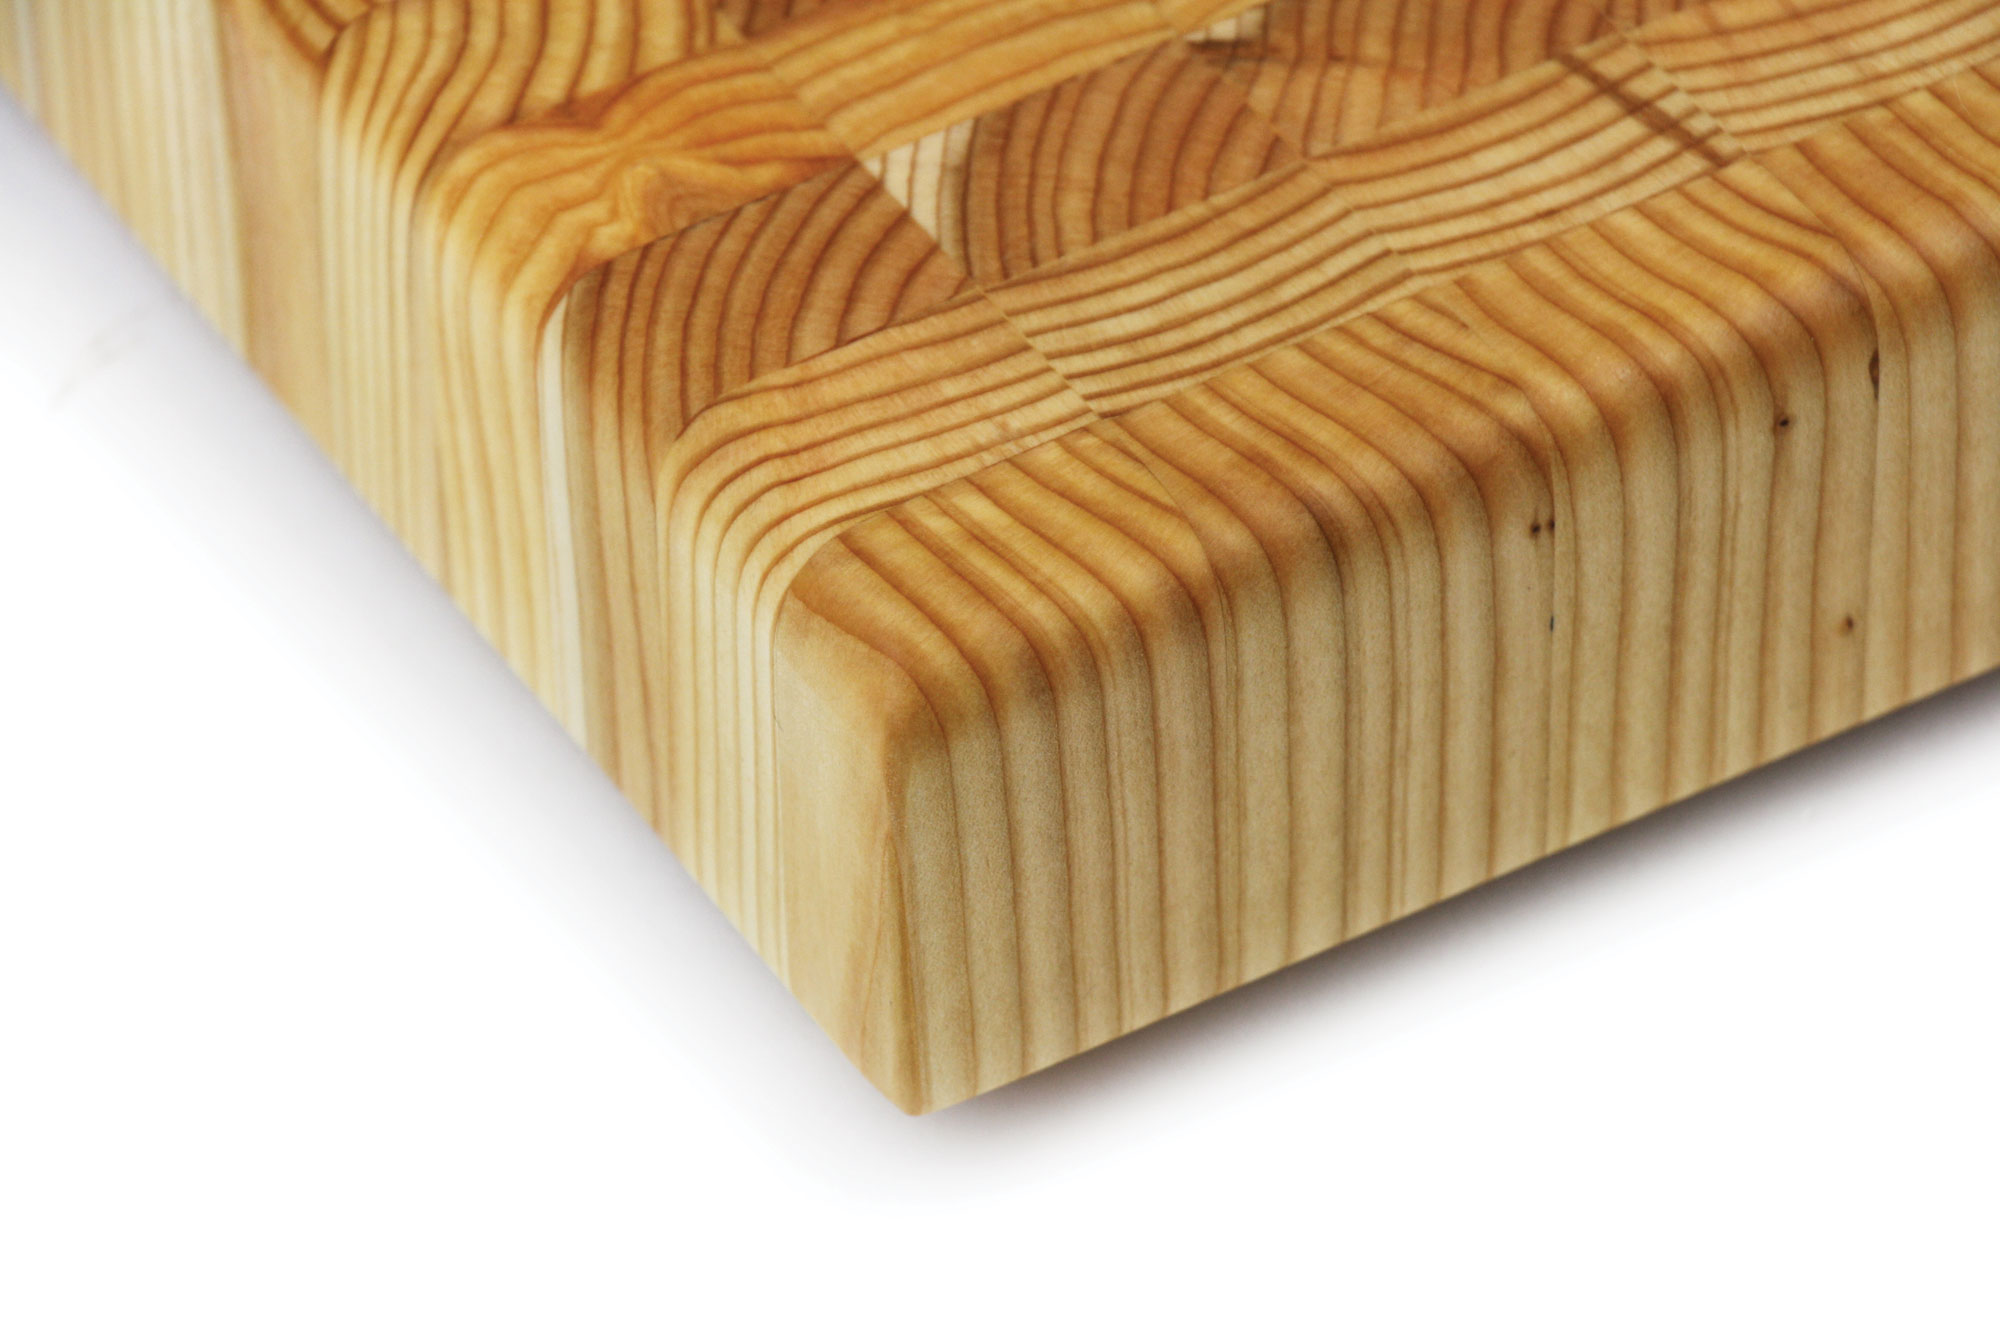 Larch Wood Cutting Board Large 24x18x2 Inch Cutlery And More